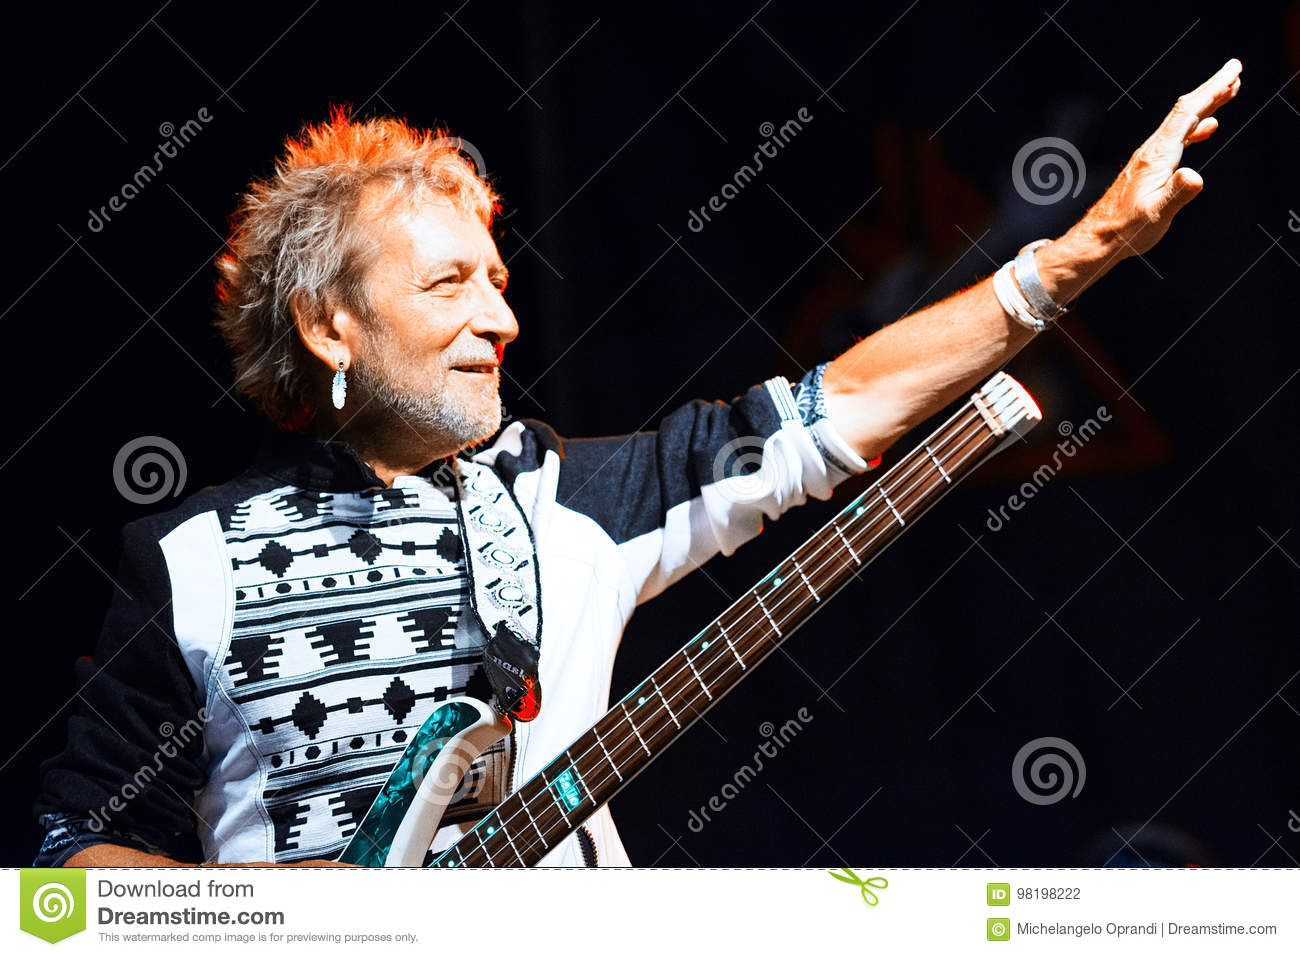 Vasco Rossi 1982 Vasco Rossi Bassist Claudio Golinelli During A Concert Performance